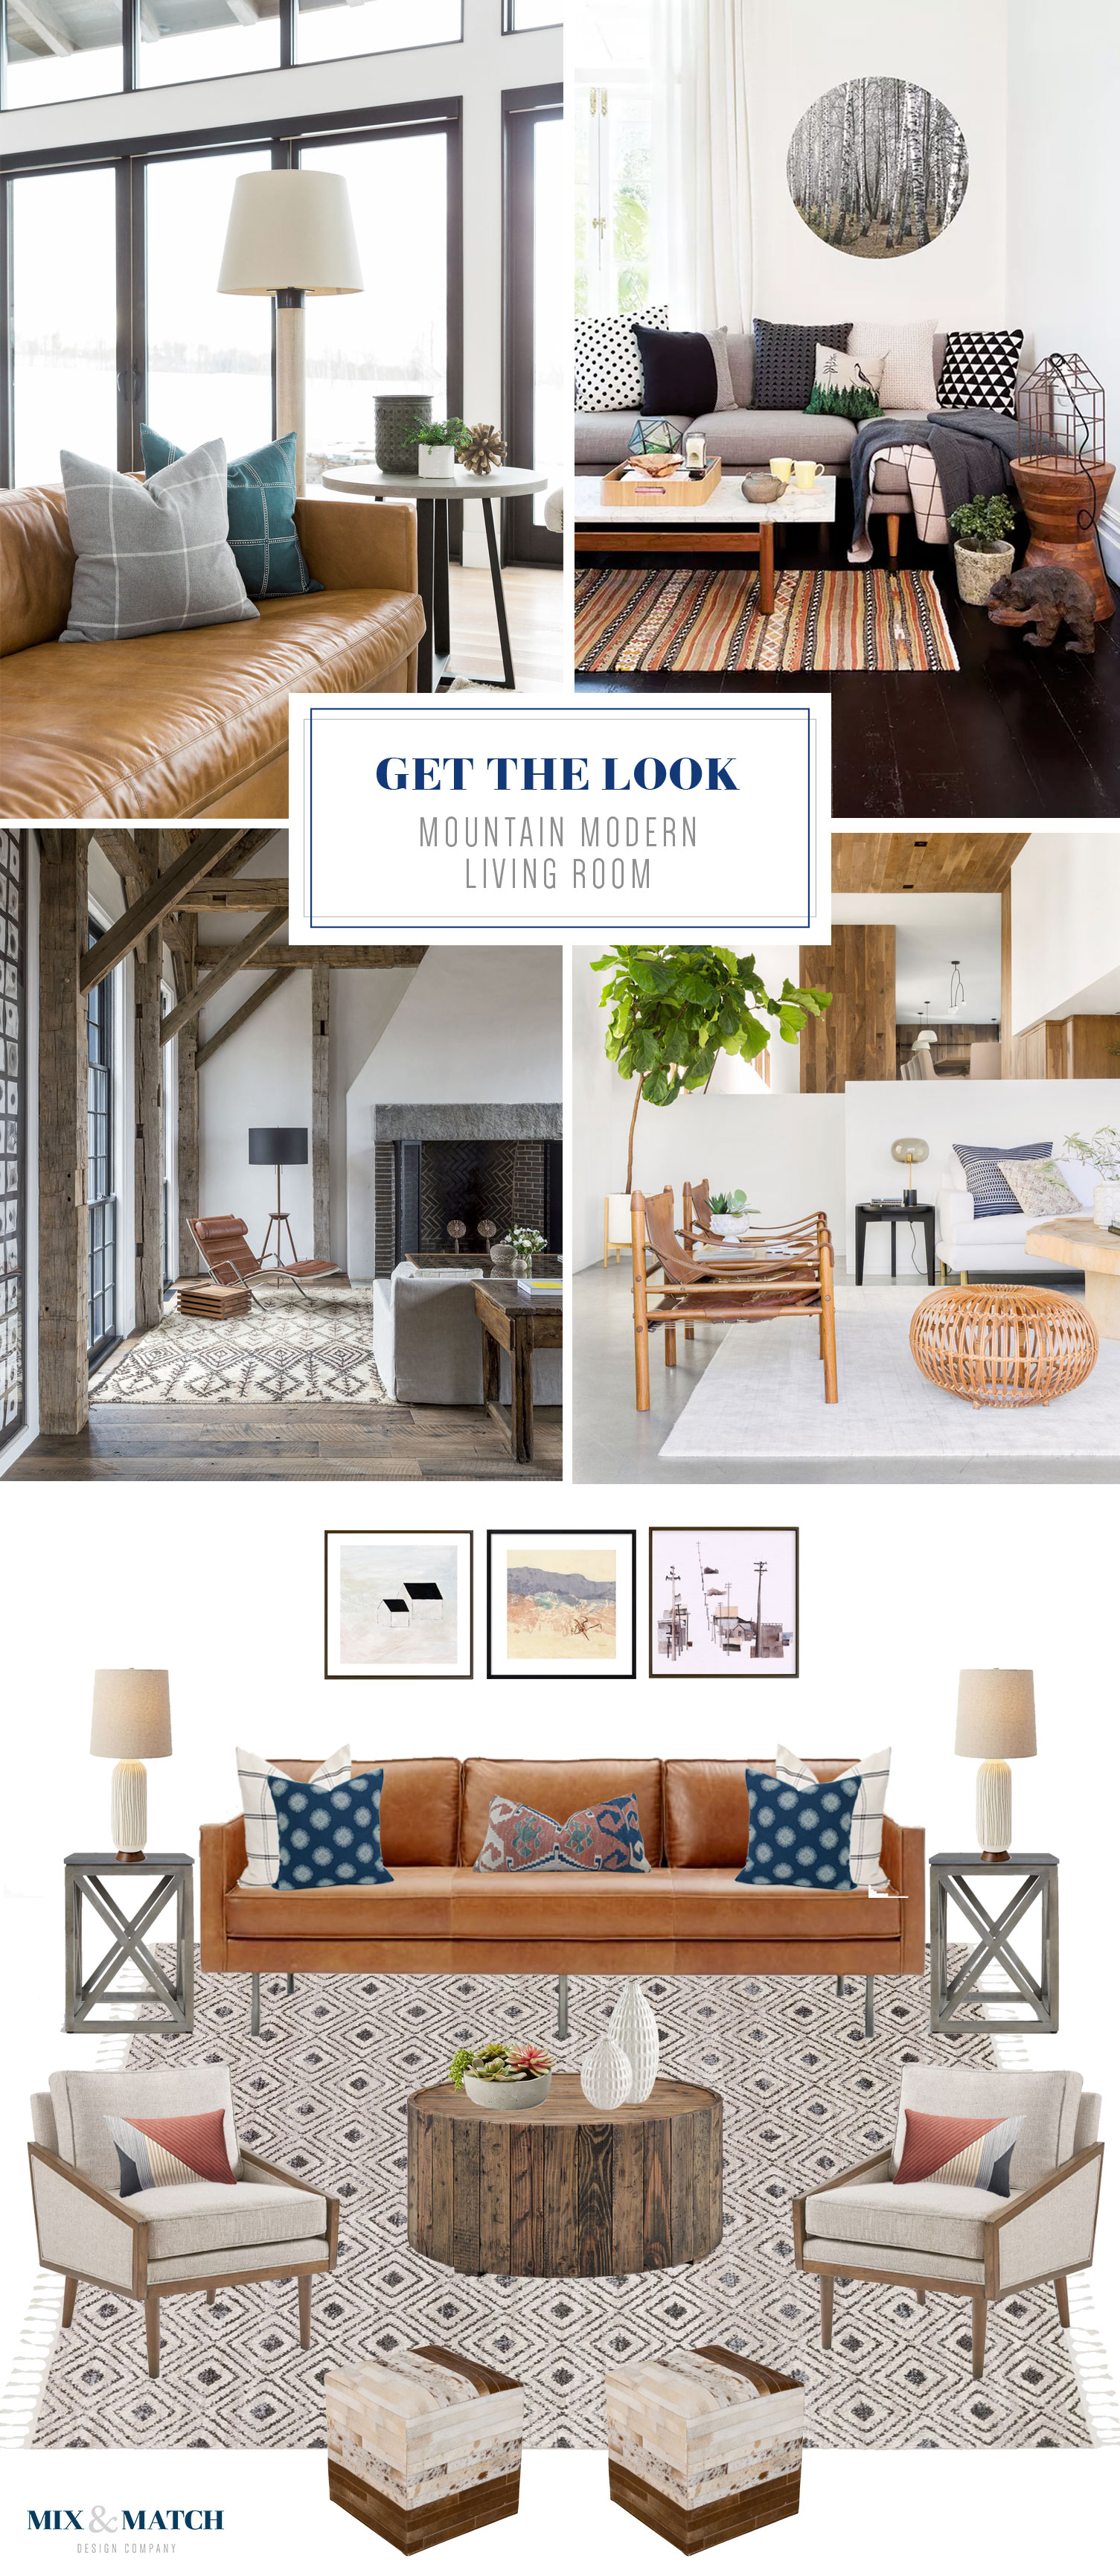 Get the look of this mountain modern living room // modern rustic living room with bohemian and mid-century touches, and a leather sofa